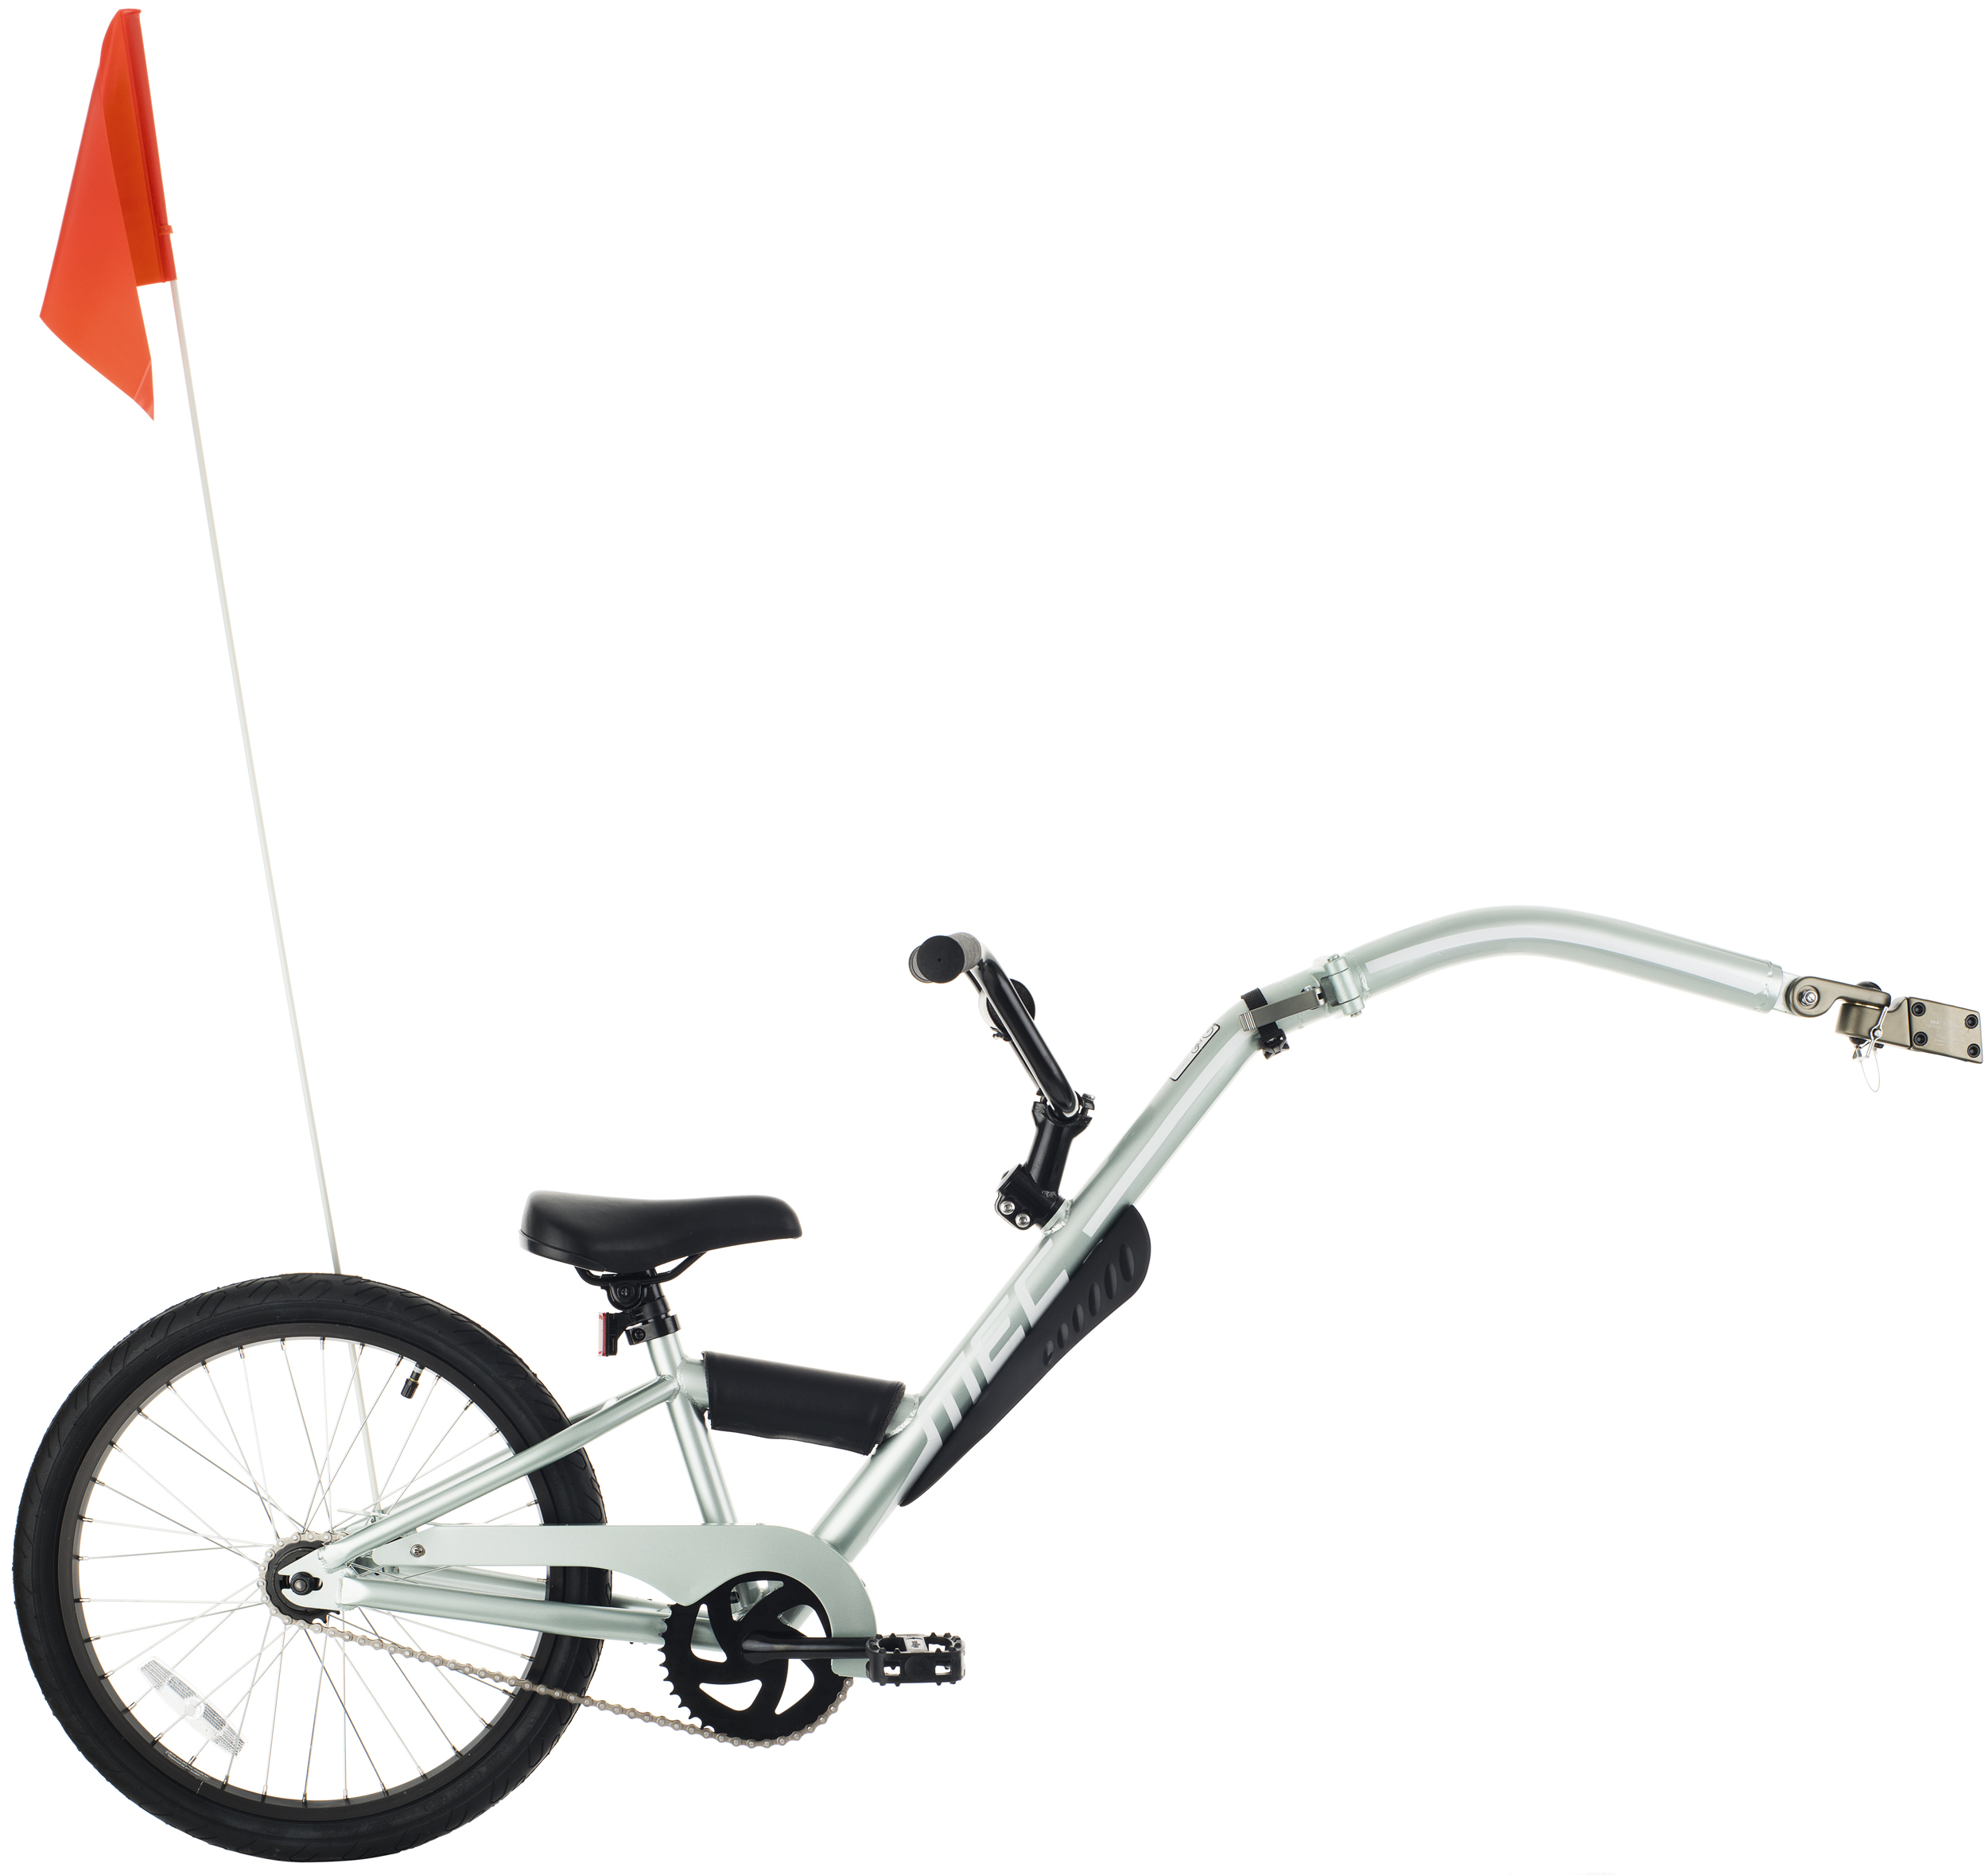 MEC Lift Trailer Bicycle - Youths